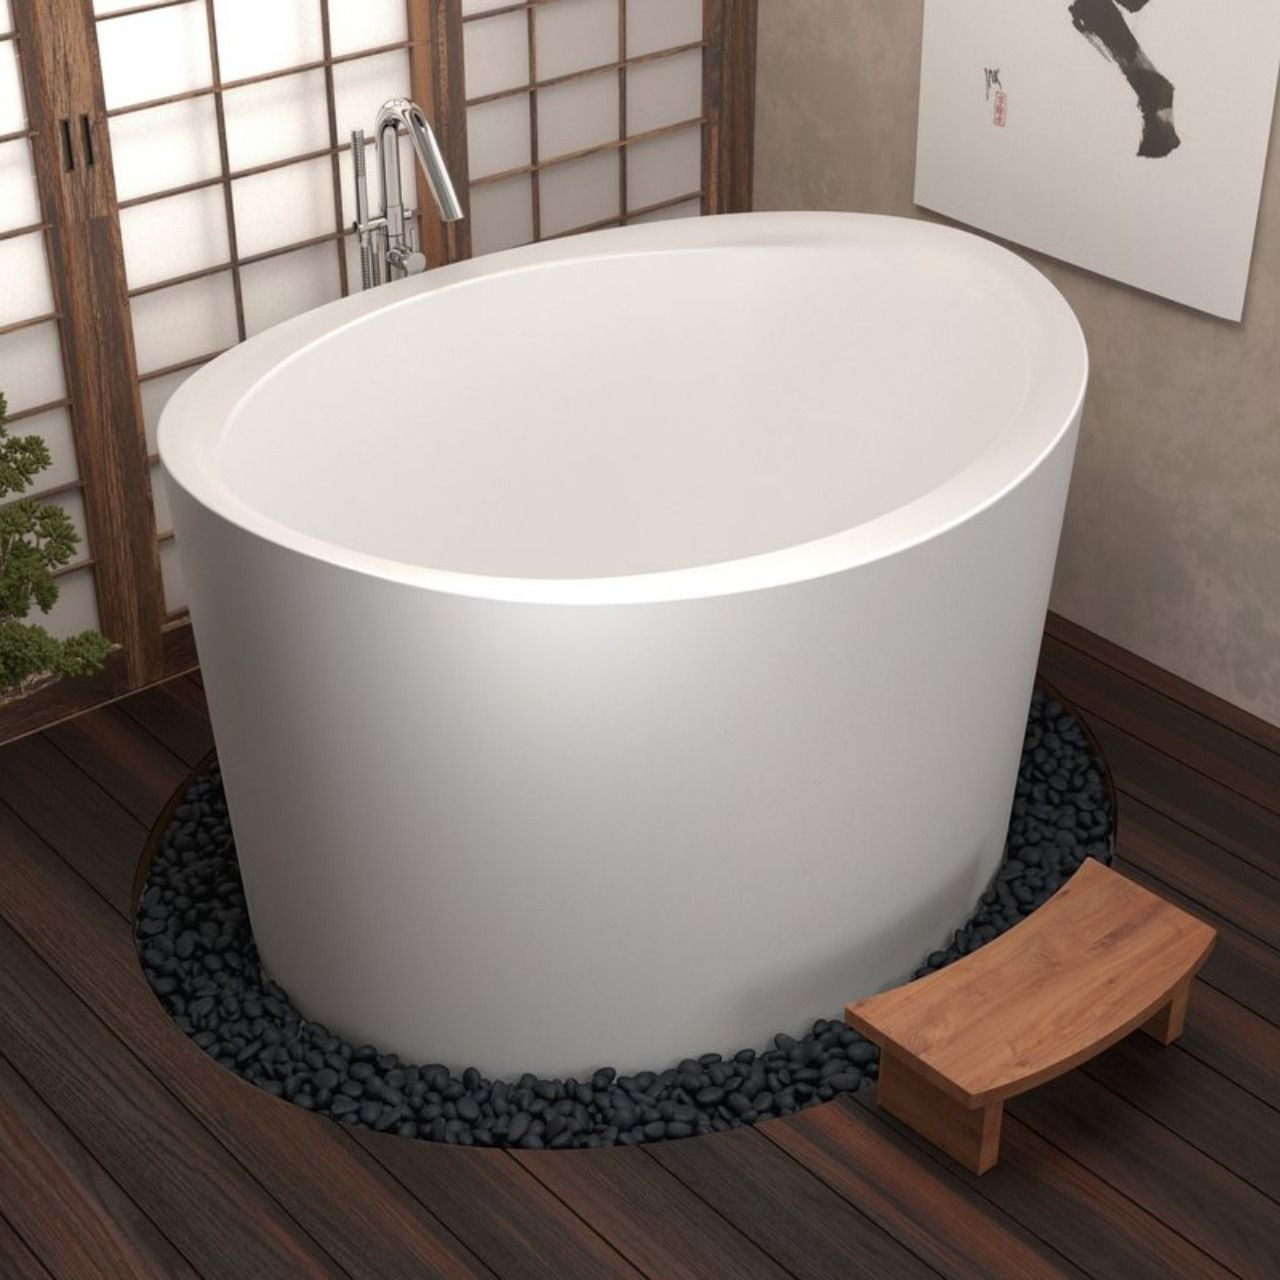 Aquatica True Ofuro Duo Outdoor Japanese Soaking Bathtub